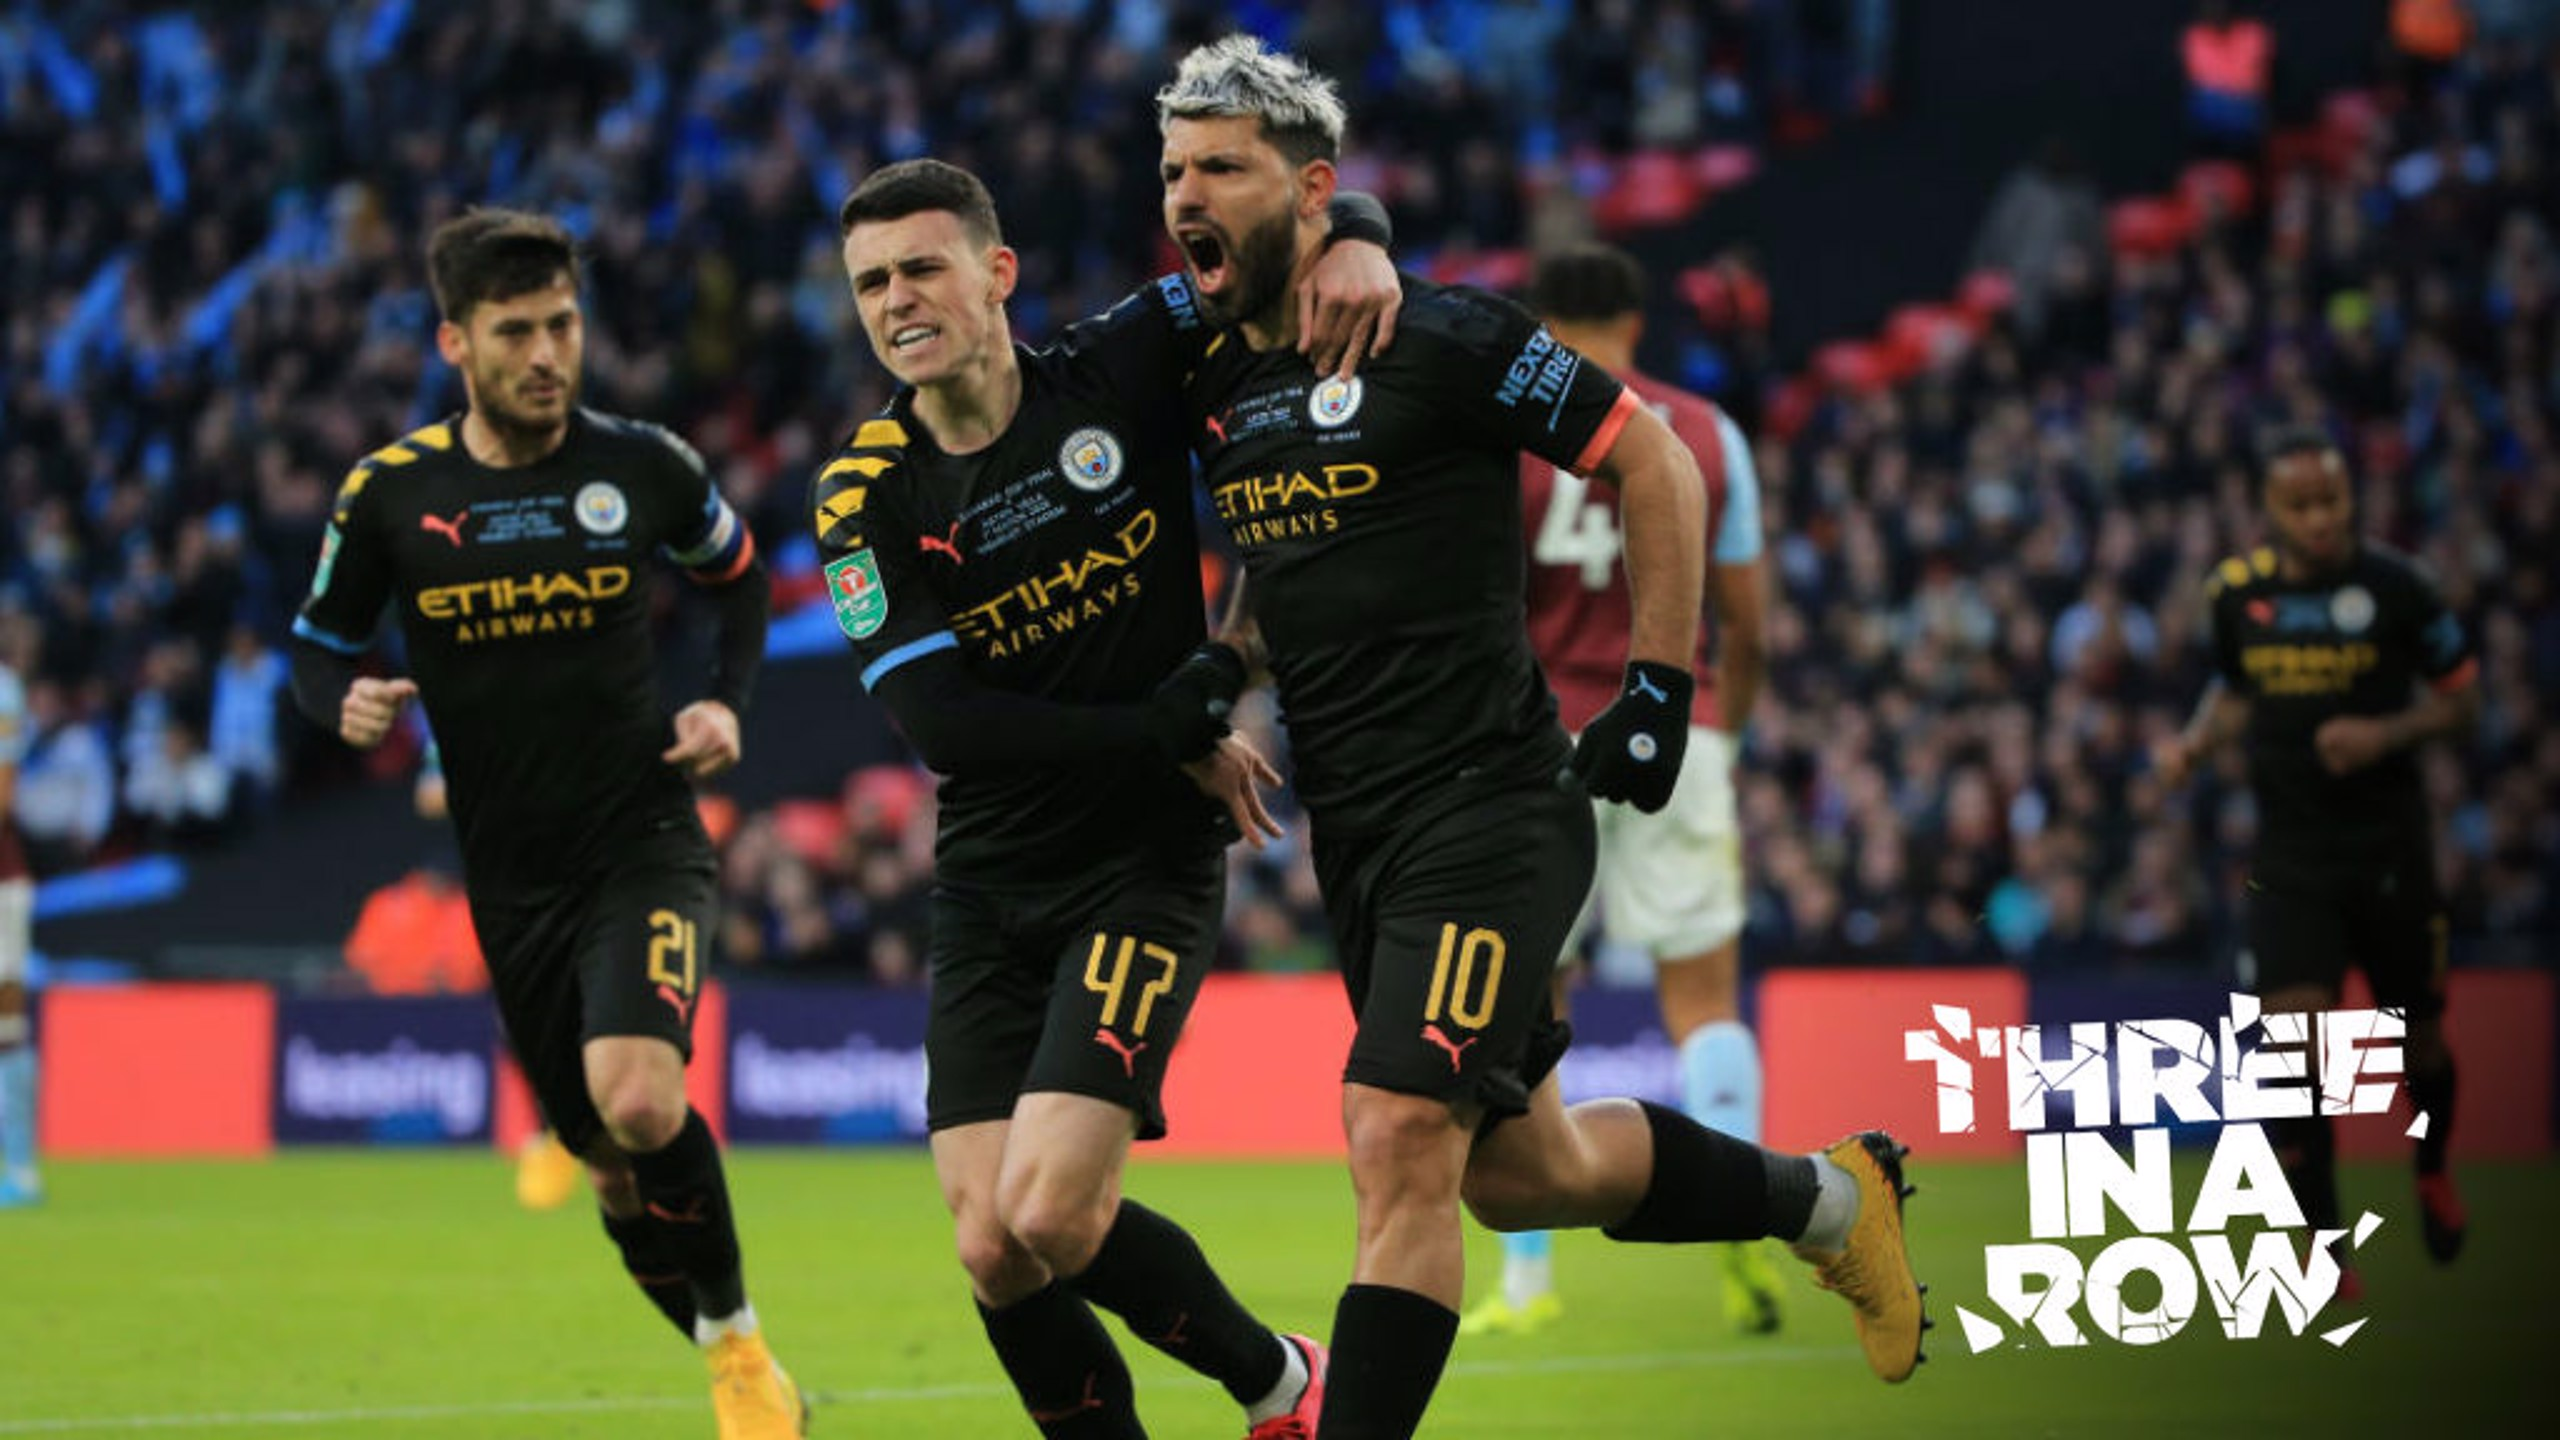 City remporte la Carabao Cup !